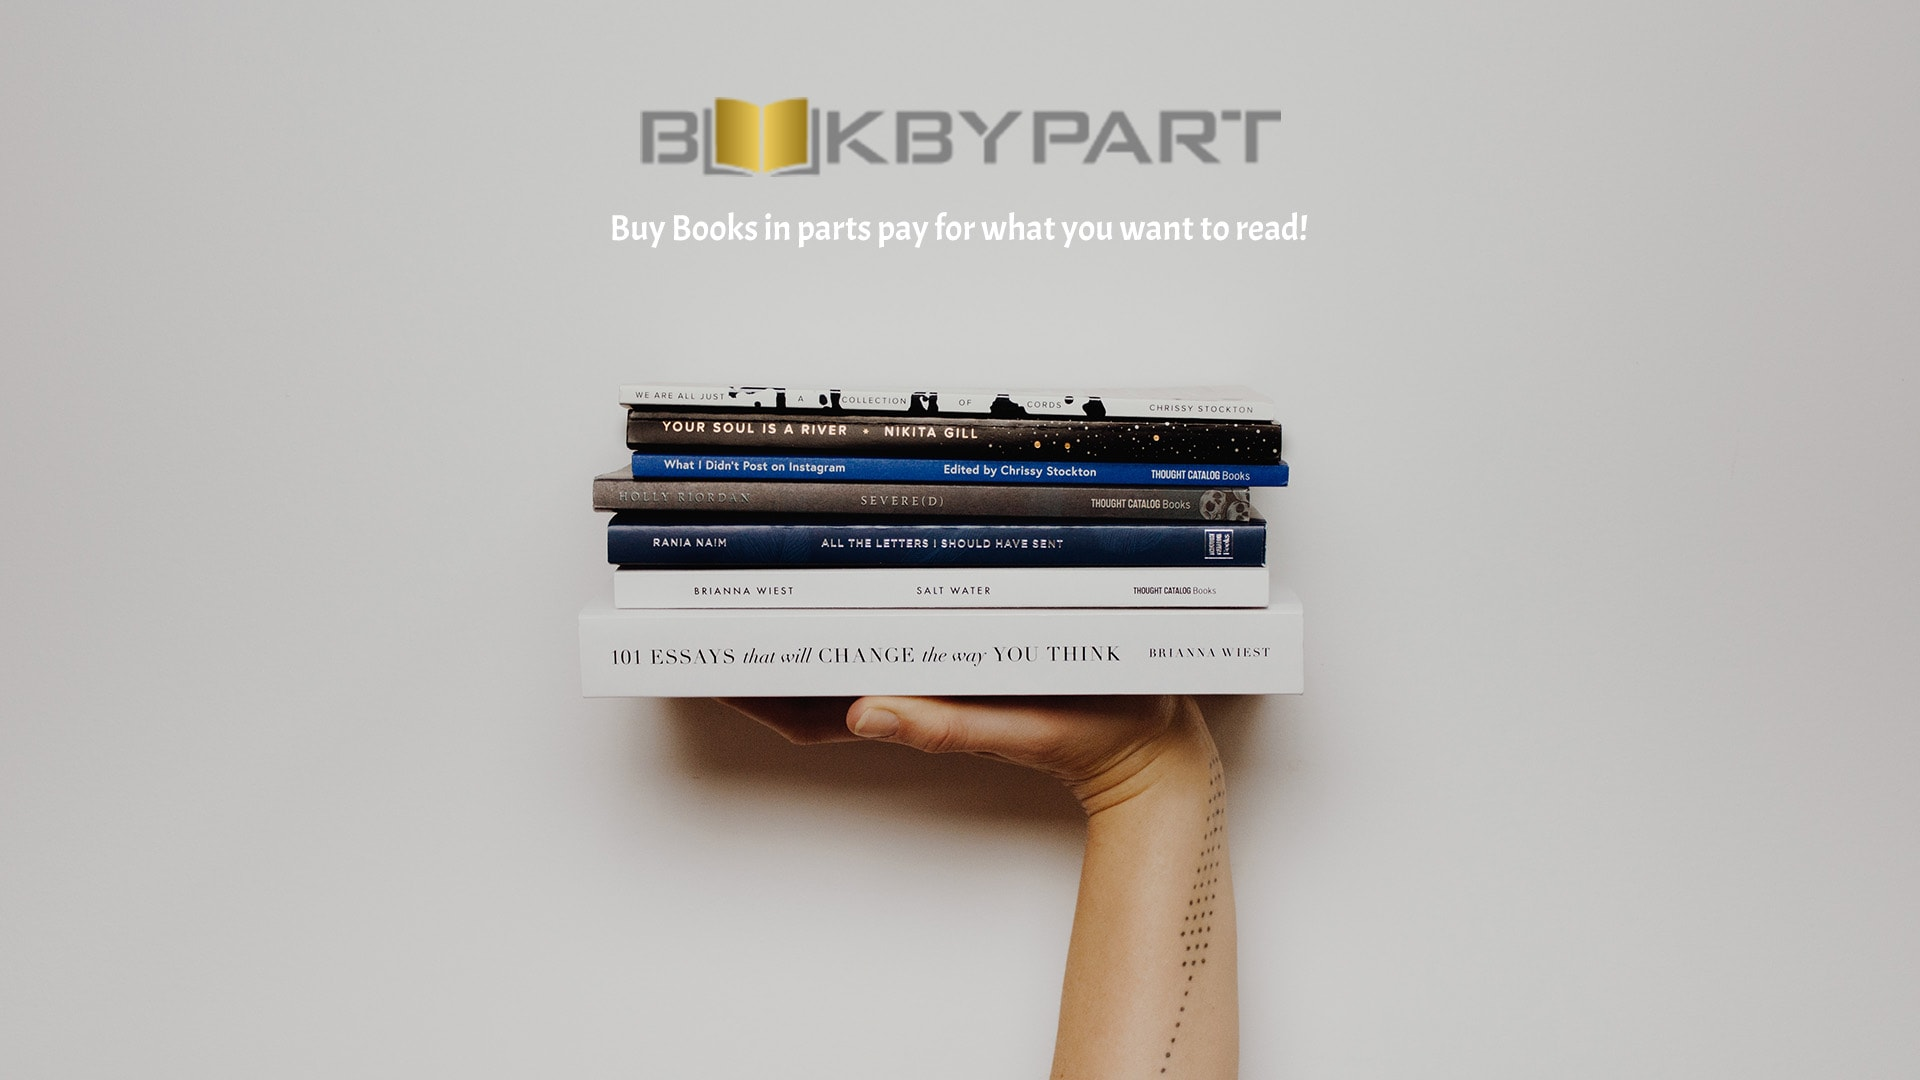 BooksByParts - Buy books in parts